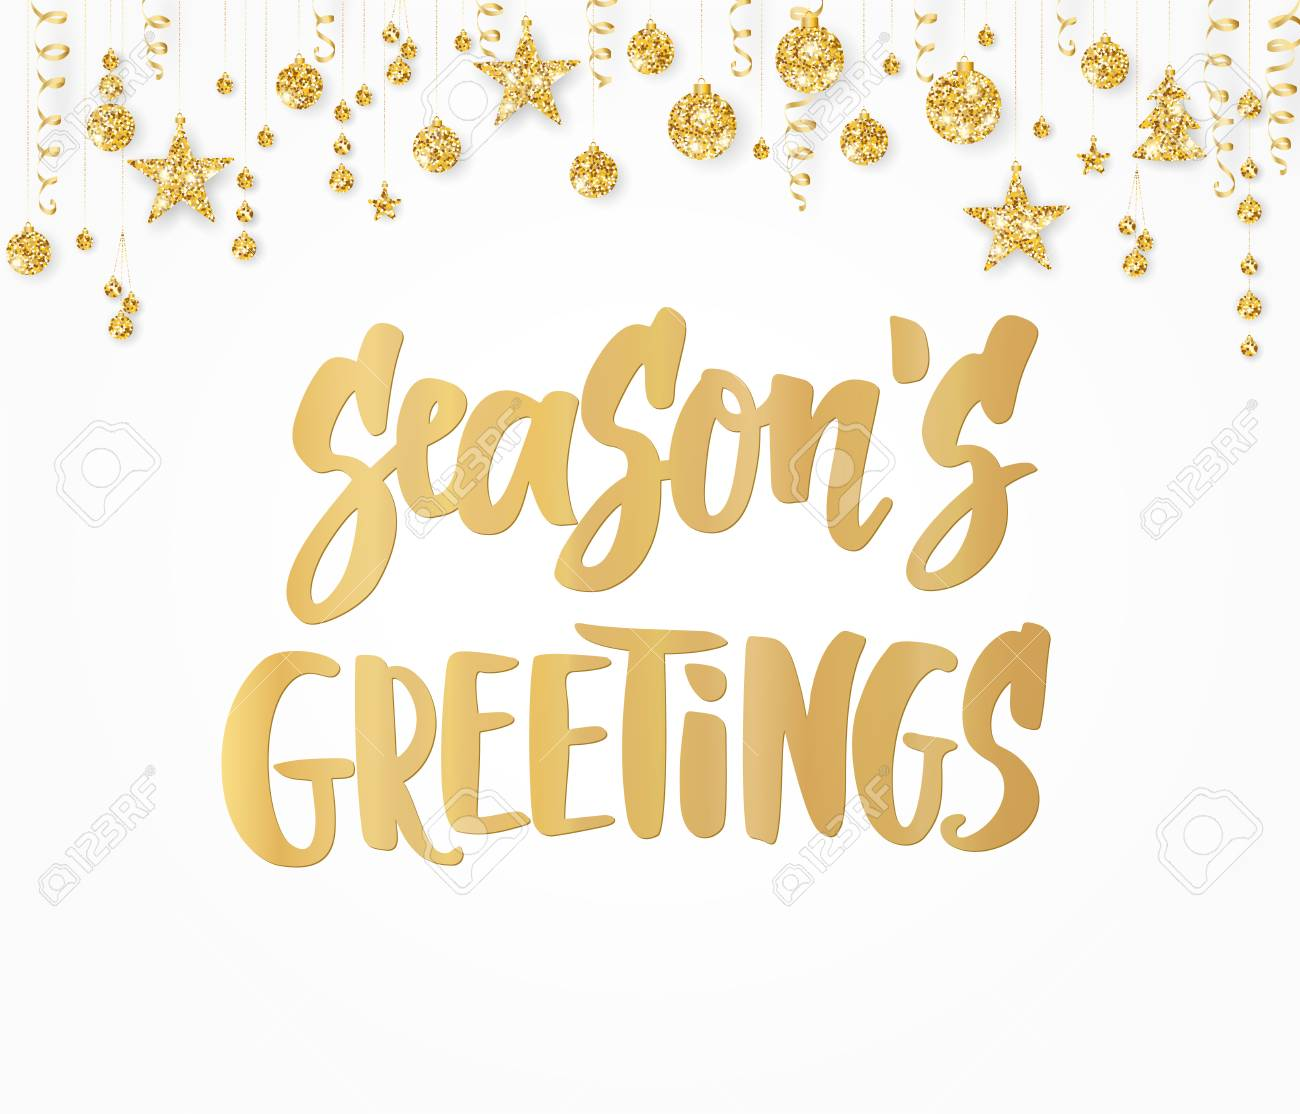 Seasons greetings text hand drawn lettering holiday quote seasons greetings text hand drawn lettering holiday quote on white background golden glitter m4hsunfo